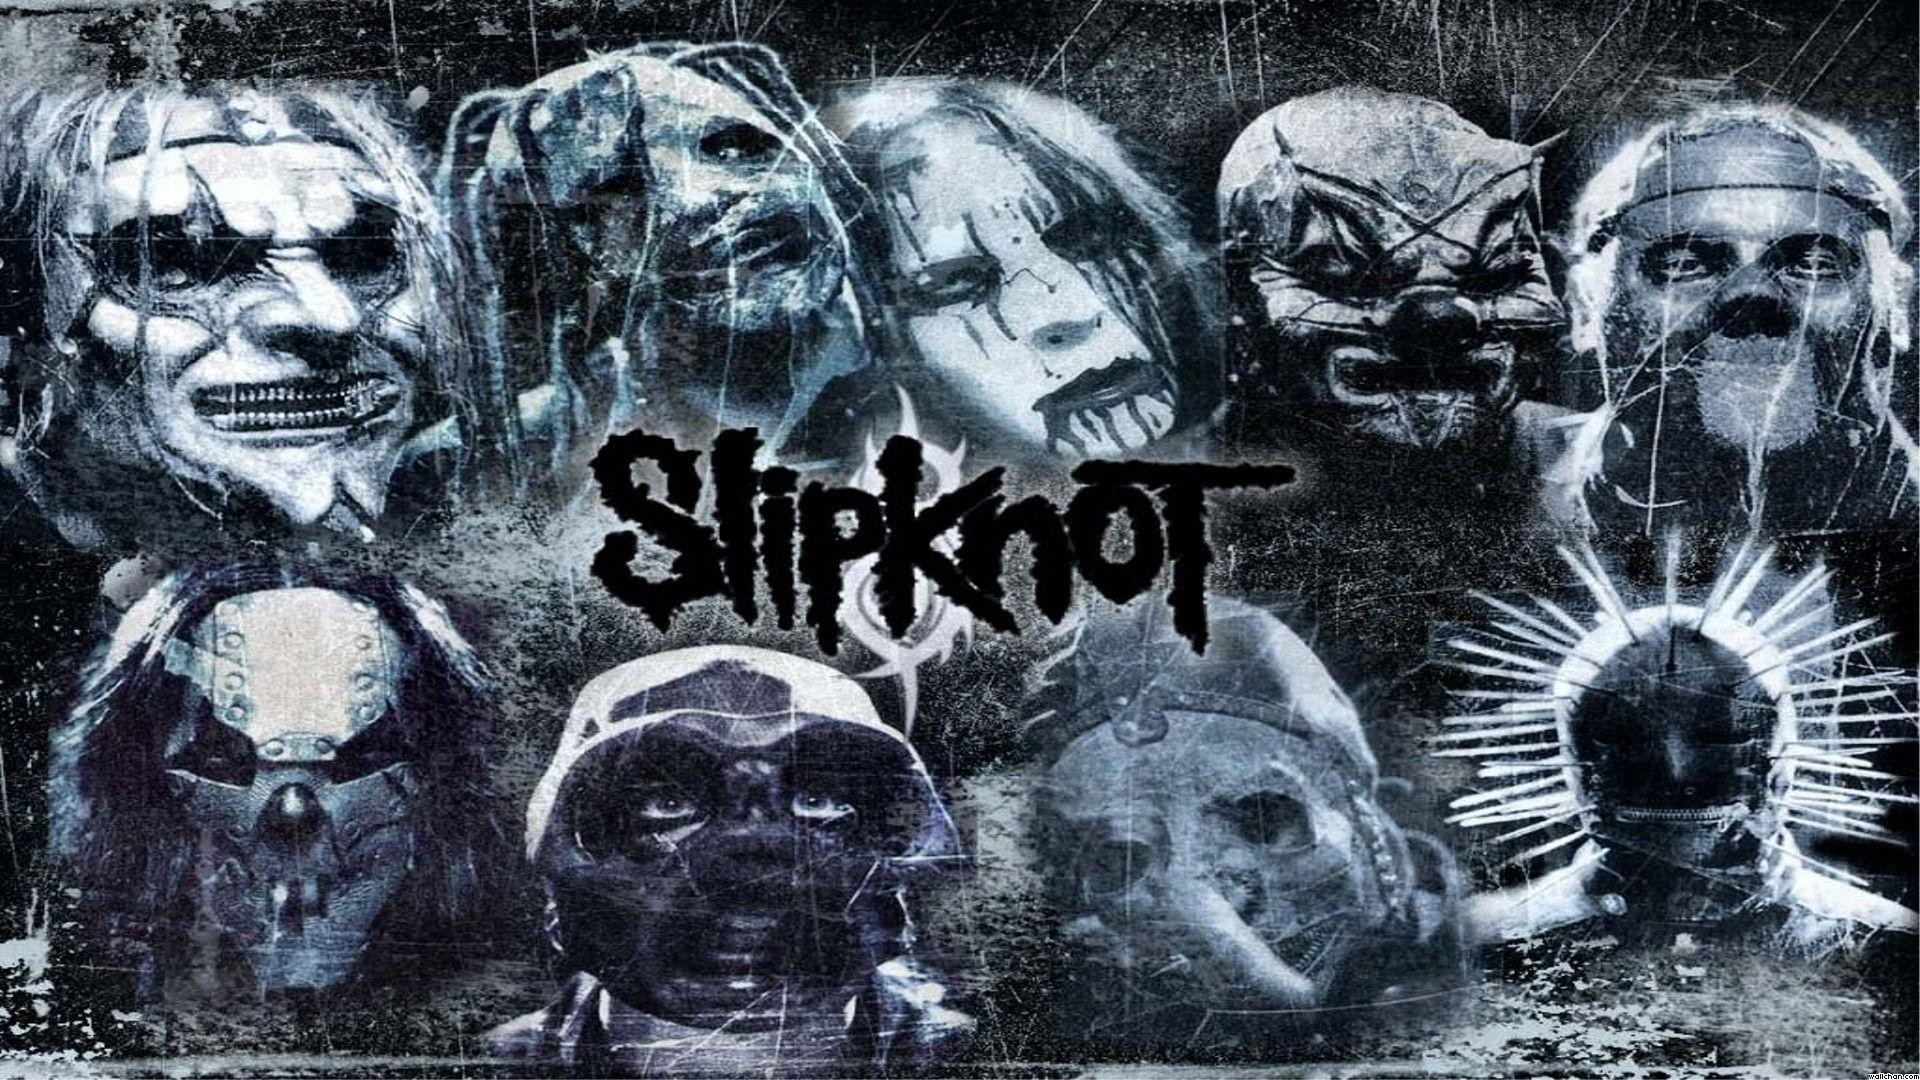 1920x1080 Slipknot HD Wallpaper | Slipknot Pictures | Cool Wallpapers